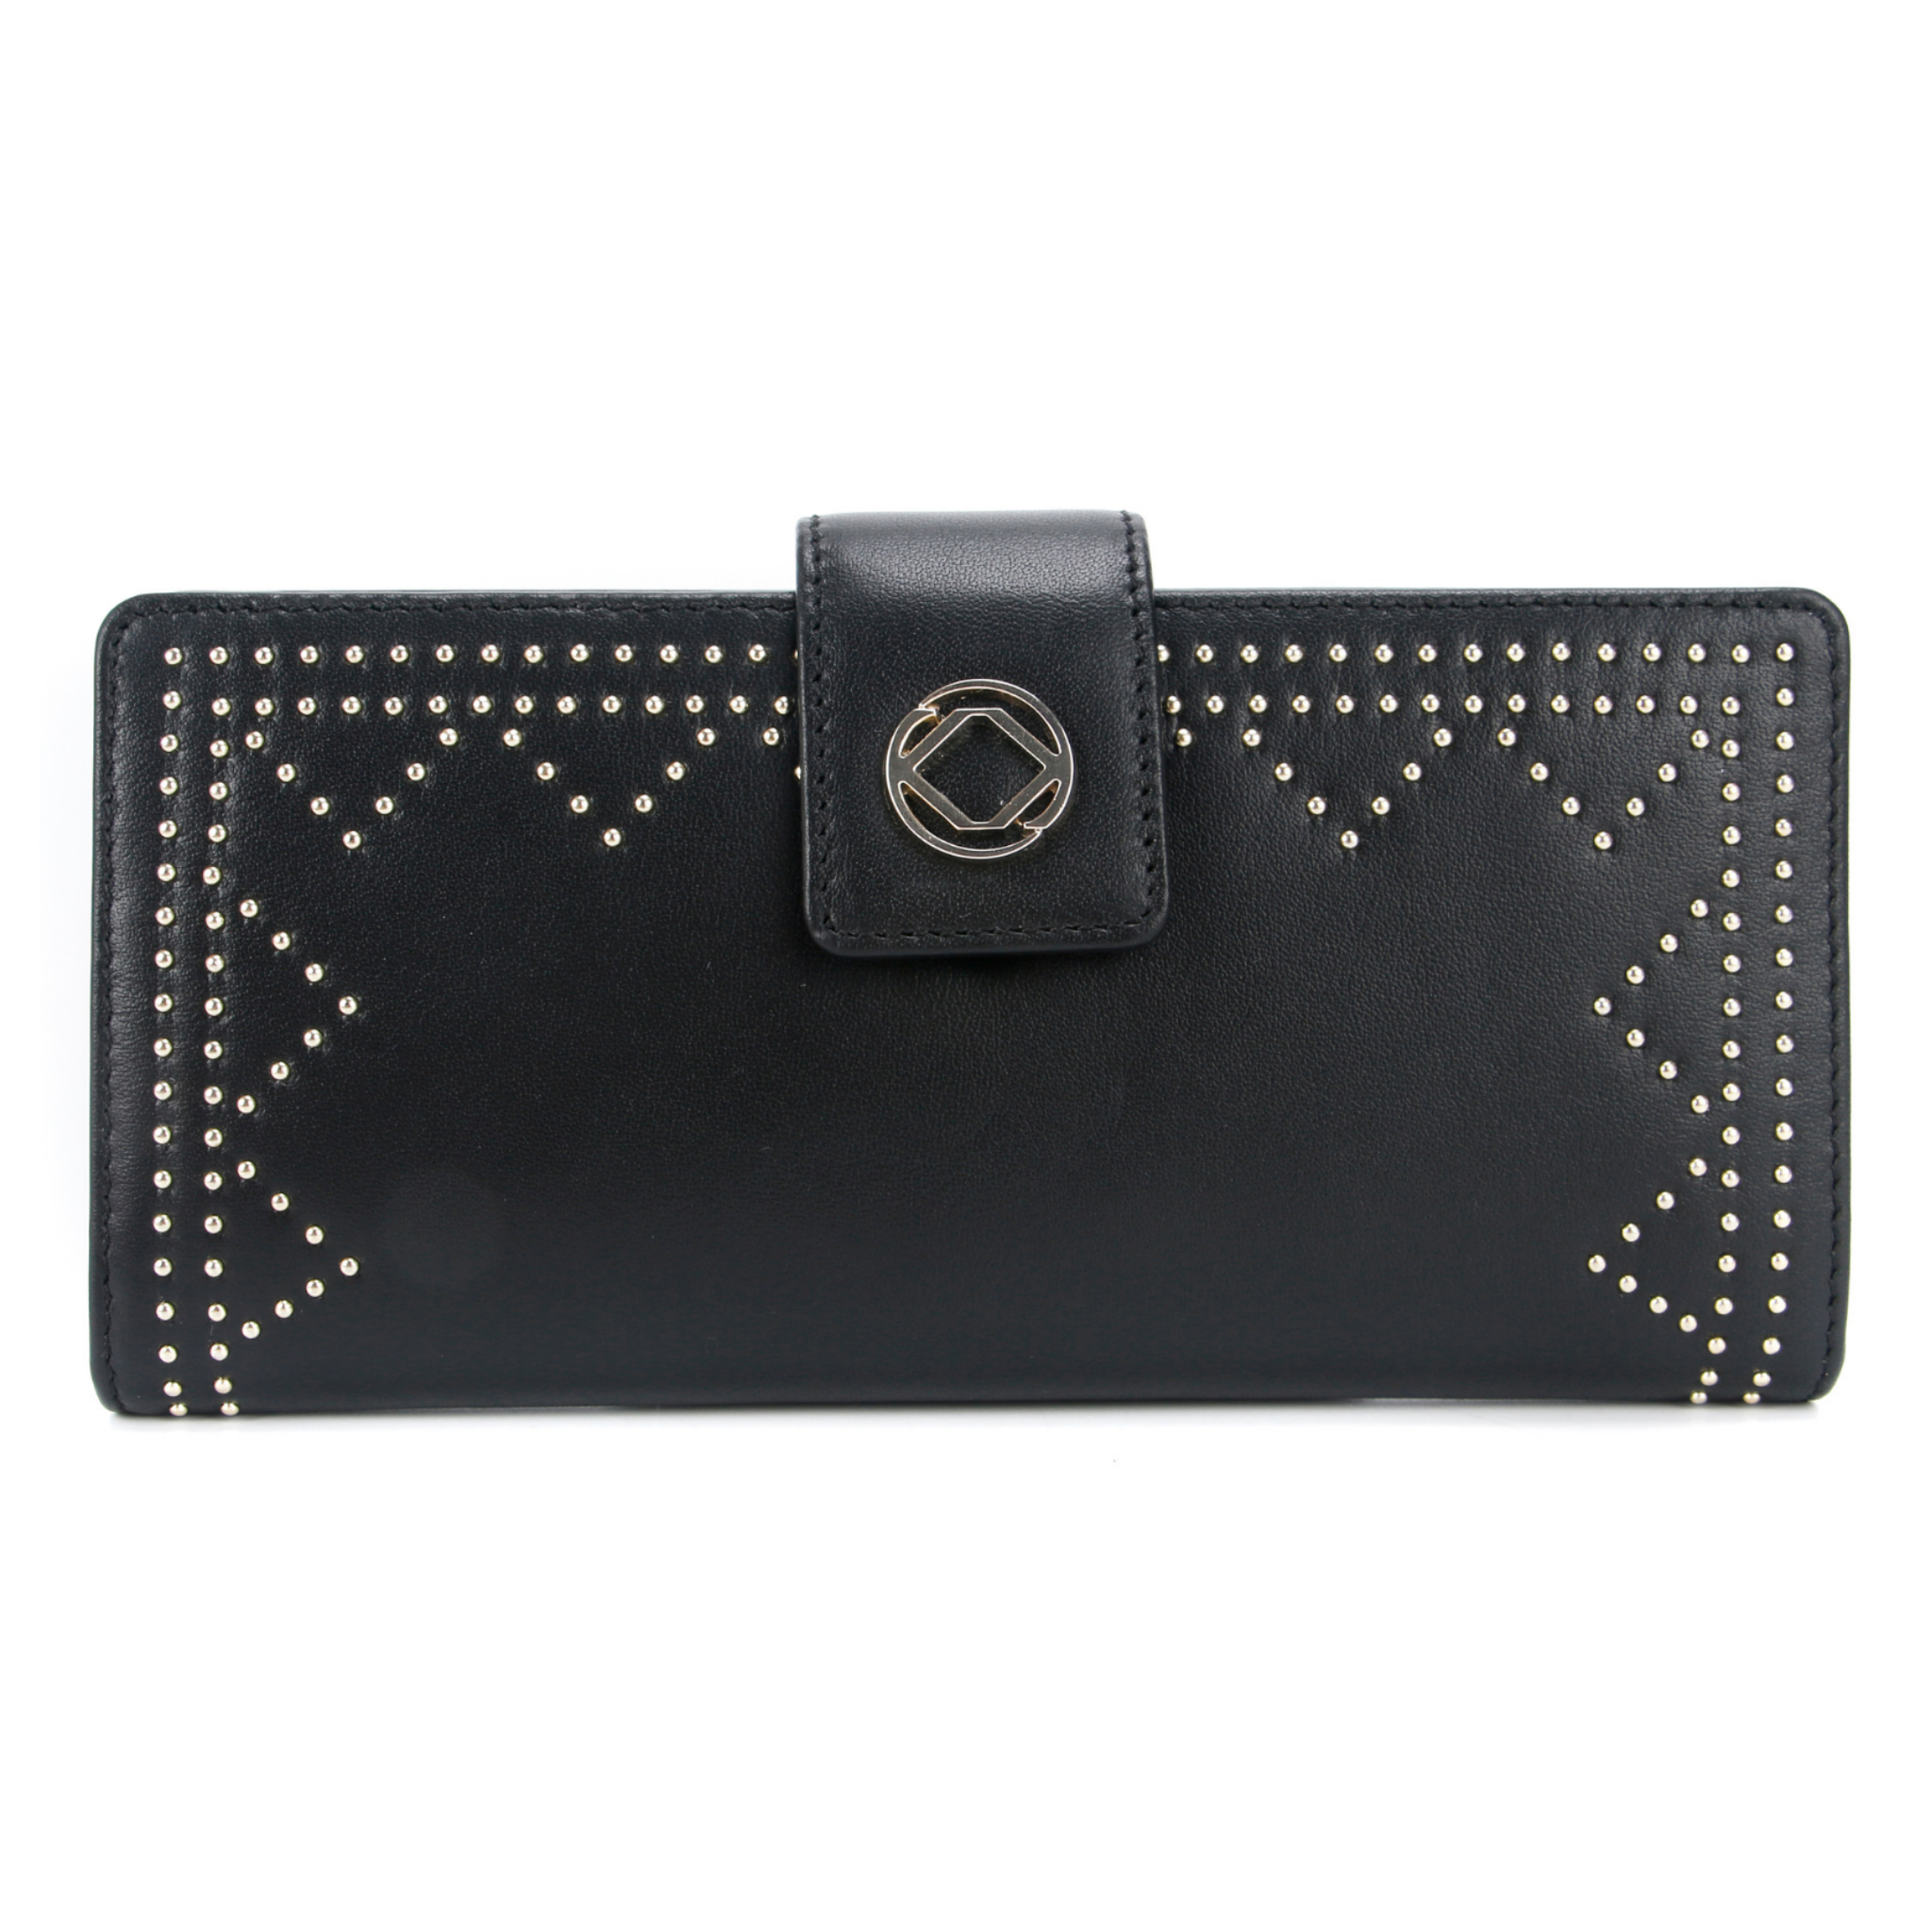 Tilly Studded Leather Purse